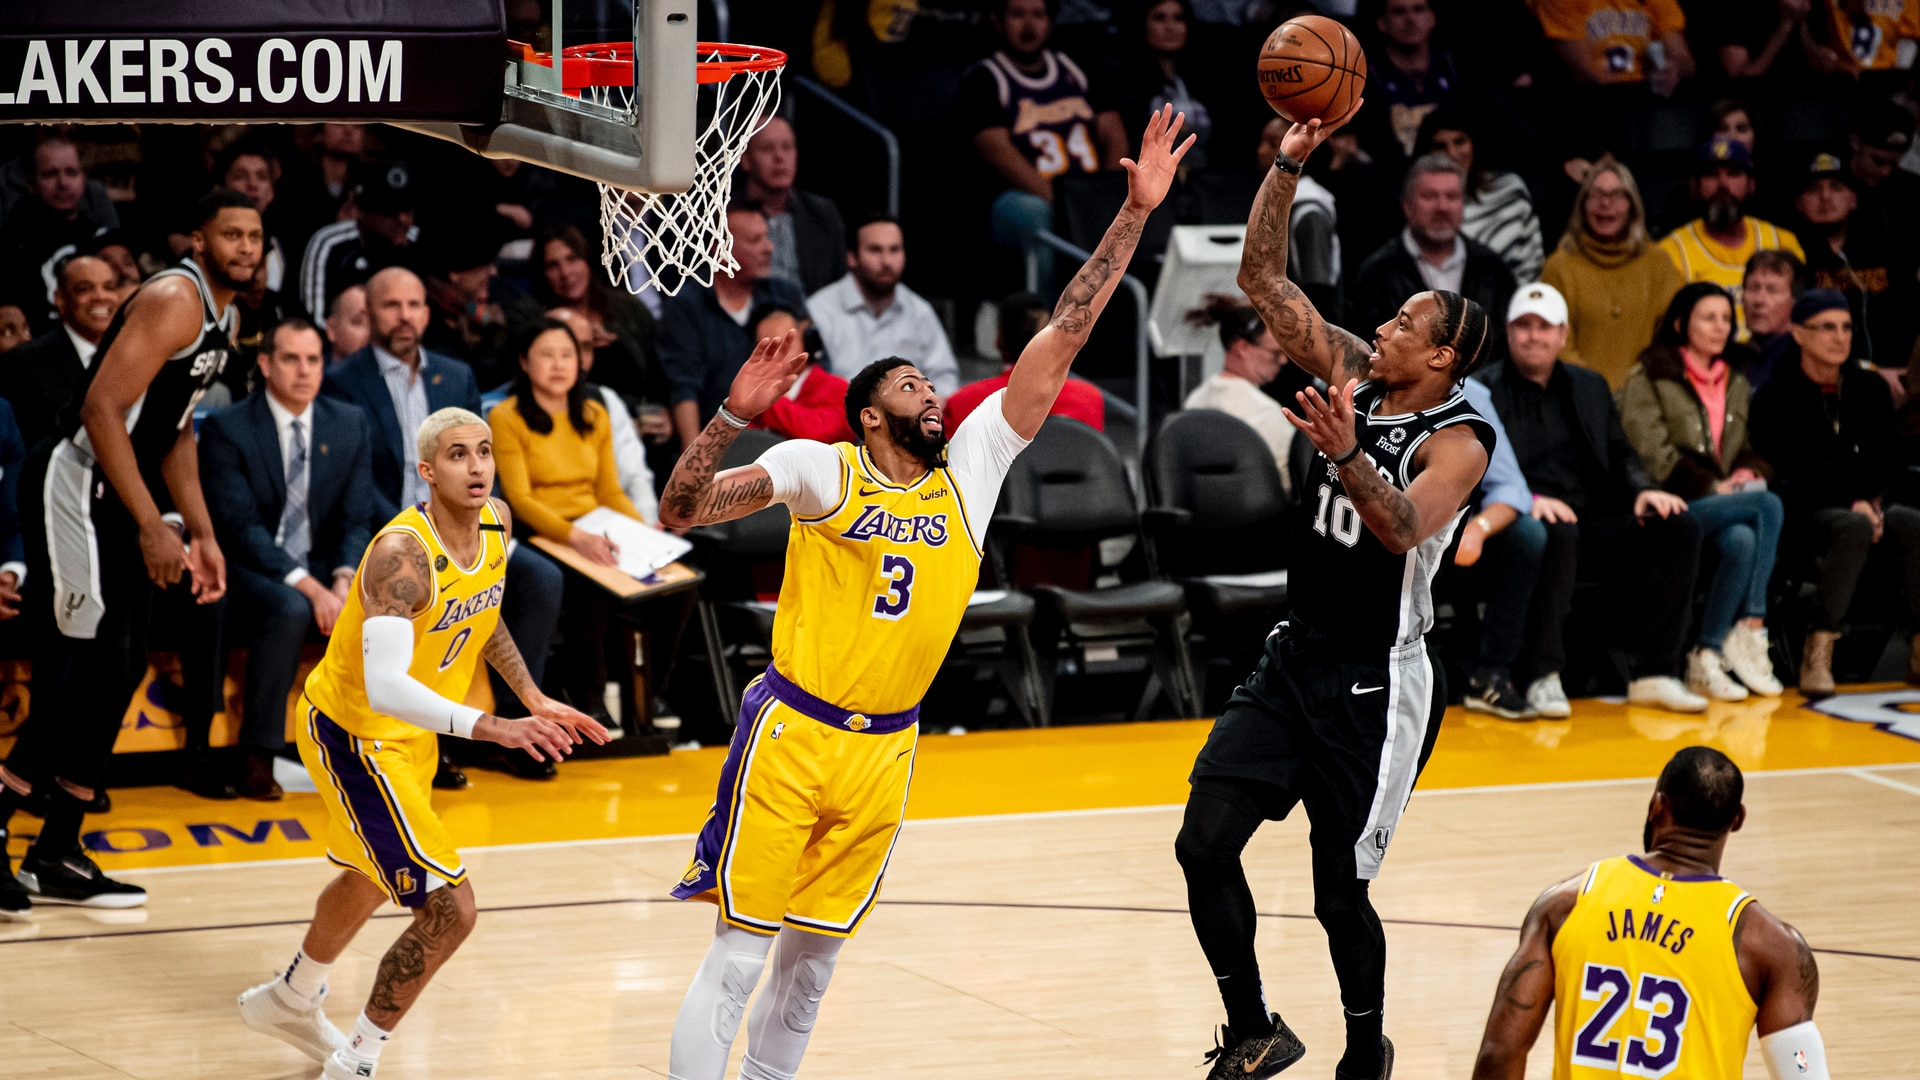 Highlights: Spurs vs. Lakers 2/4